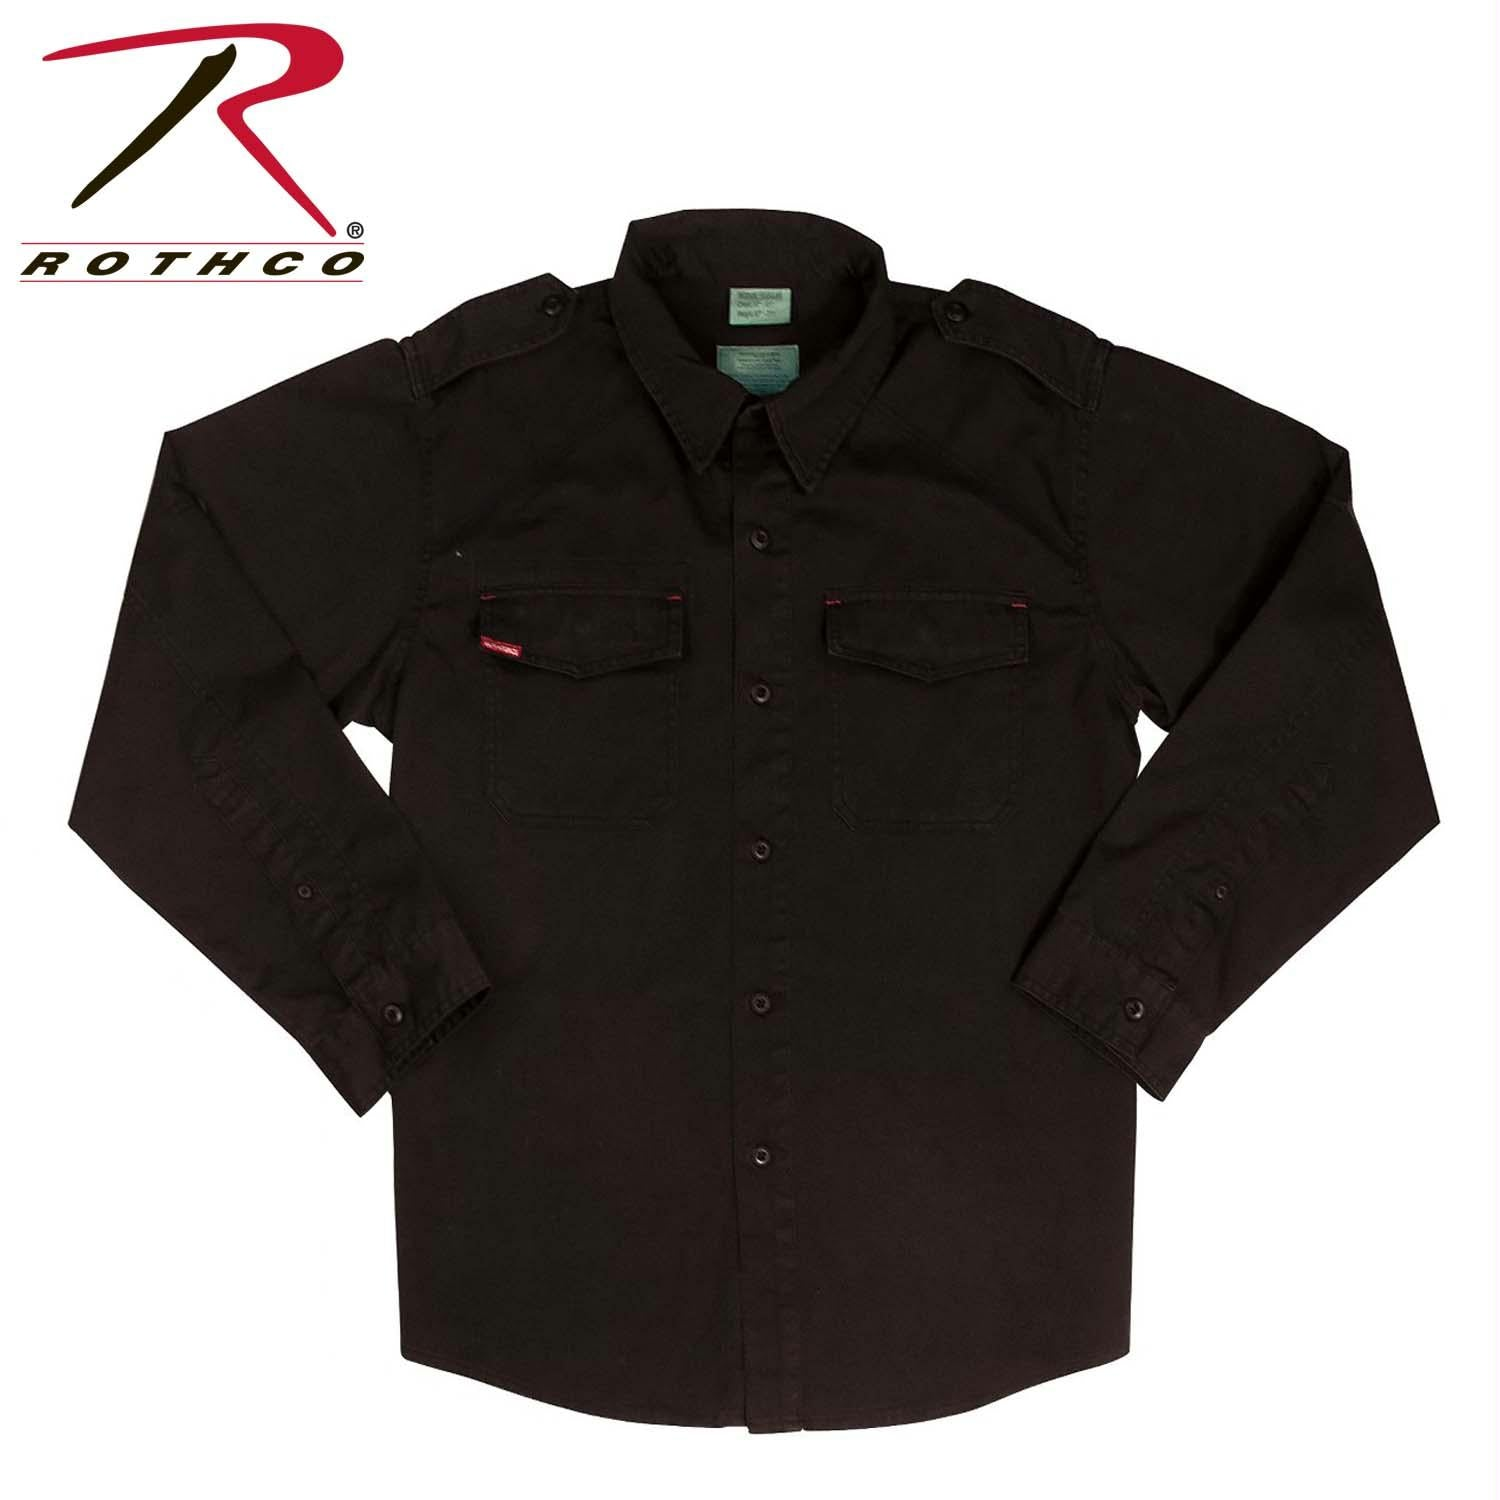 Rothco Vintage Fatigue Shirts - Black / S